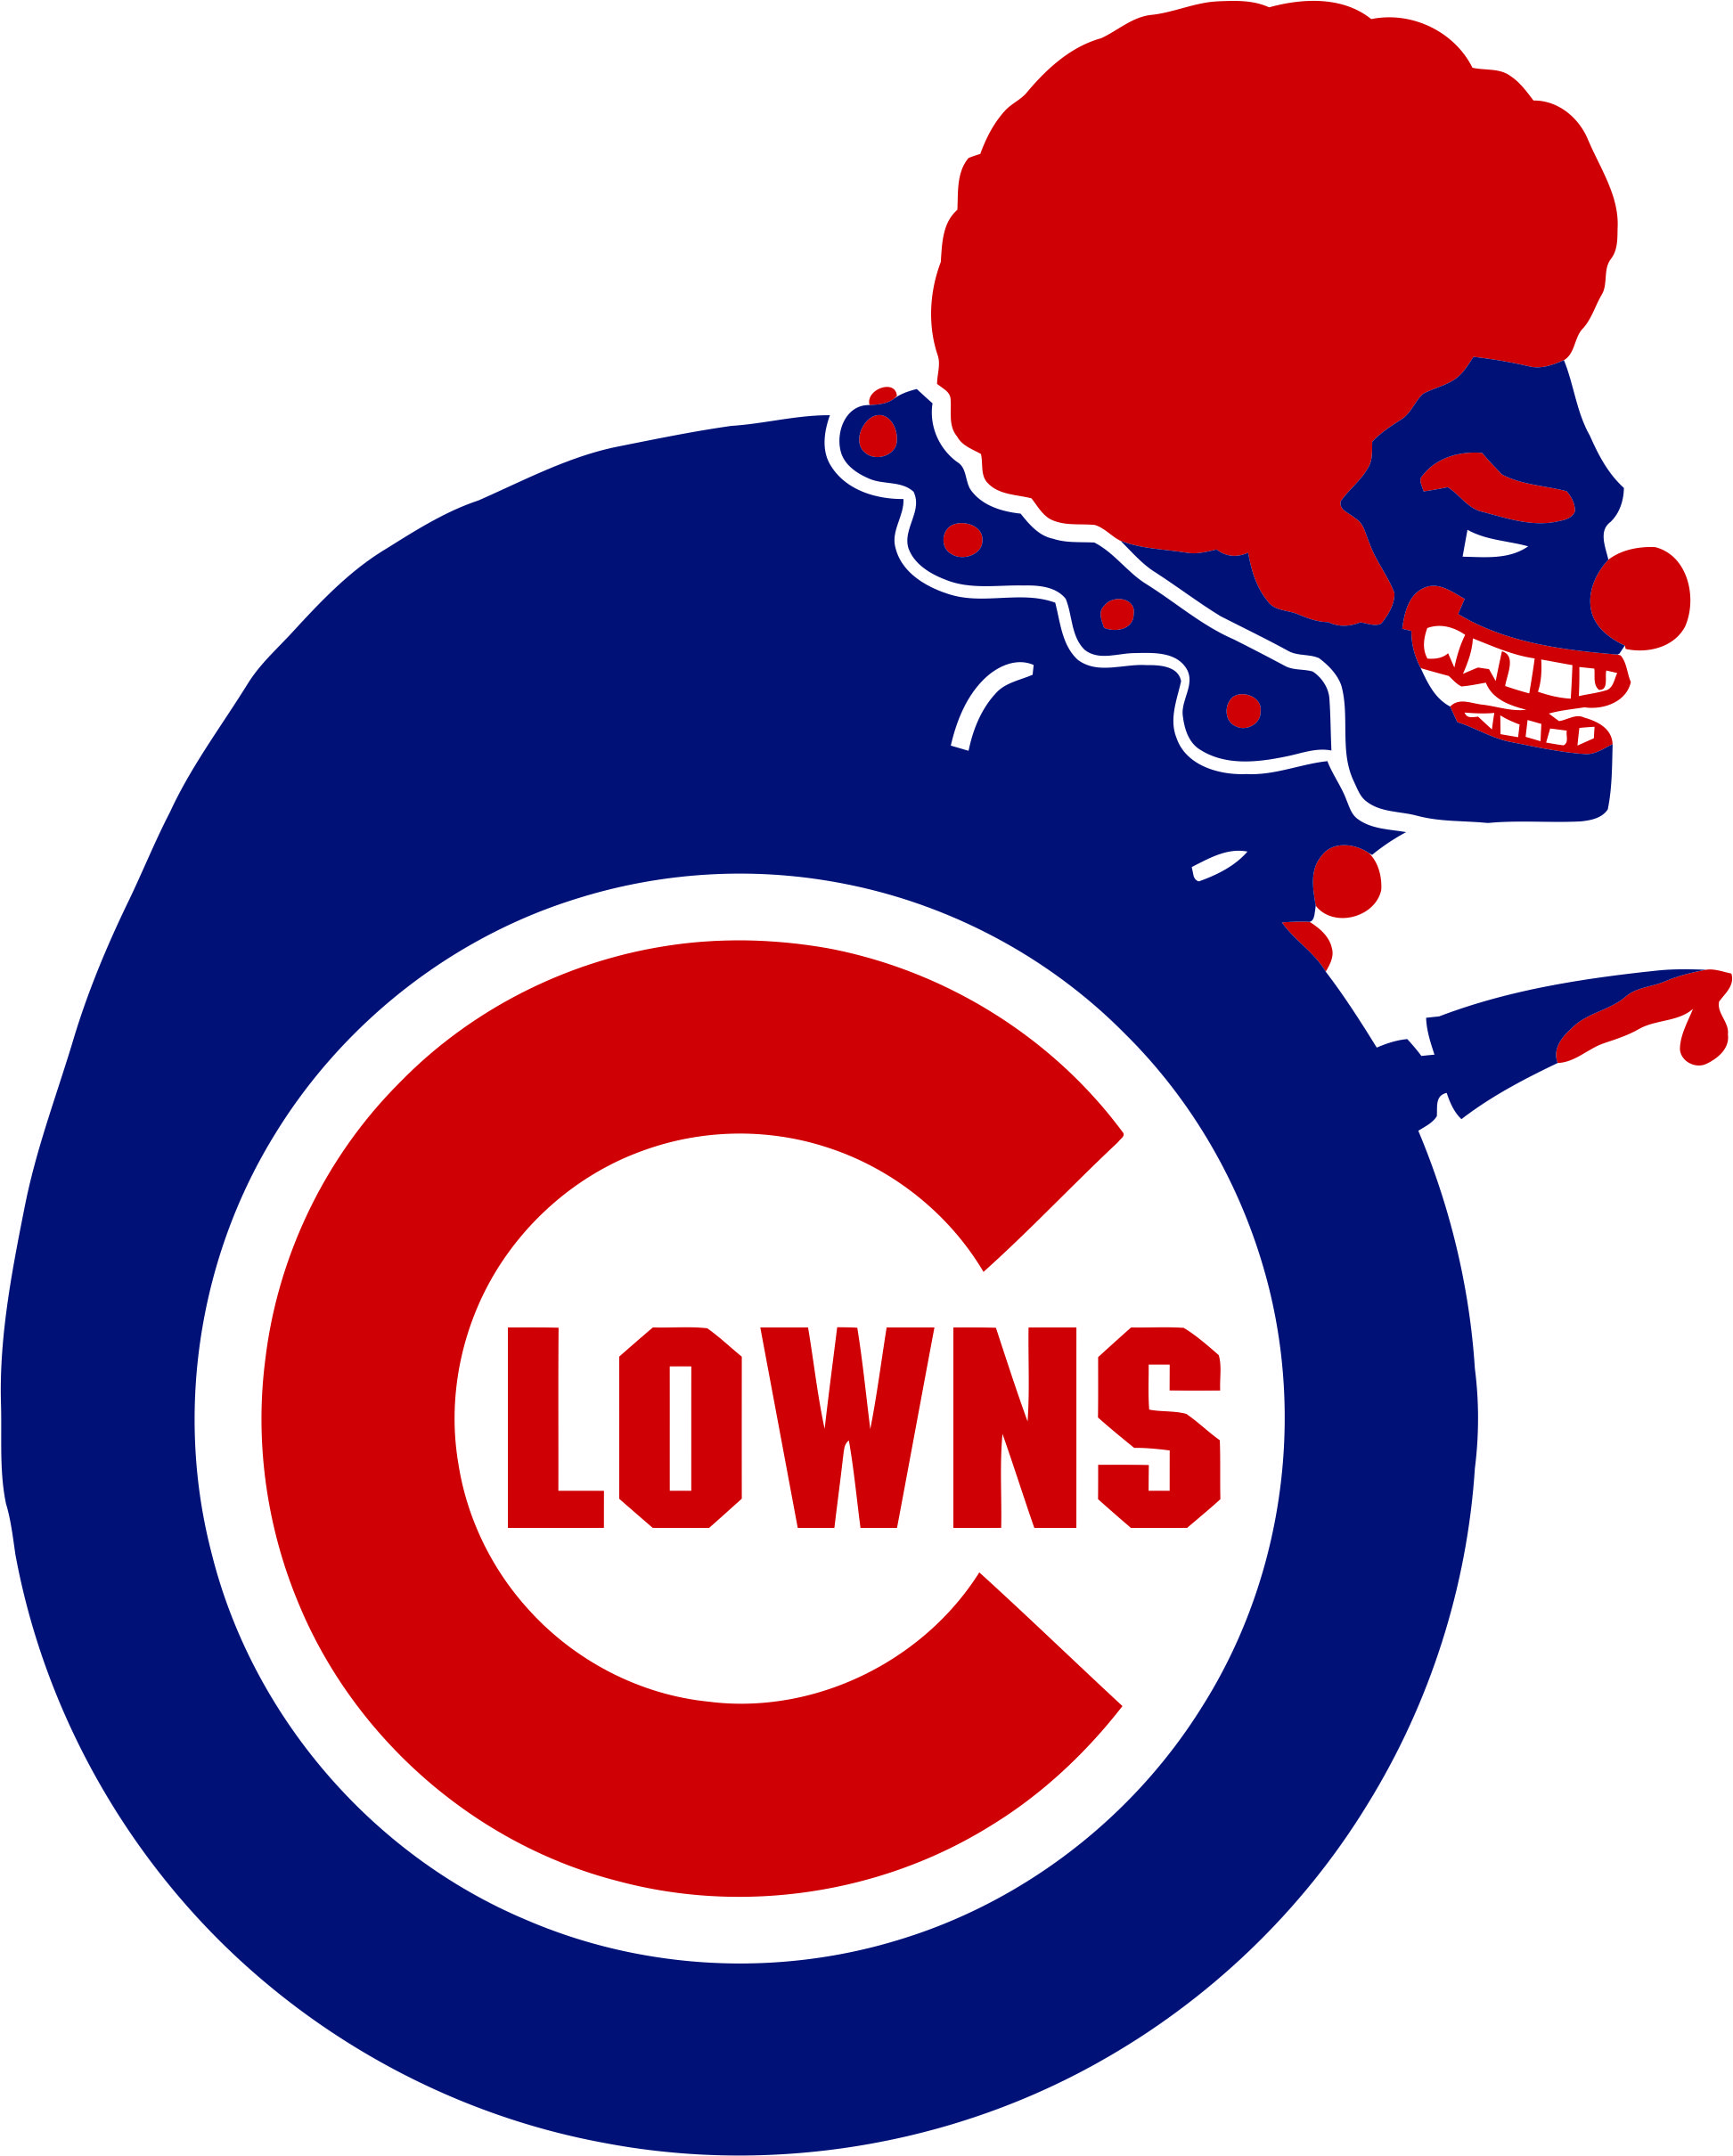 Chicago Cubs Lowns Logo iron on transfers